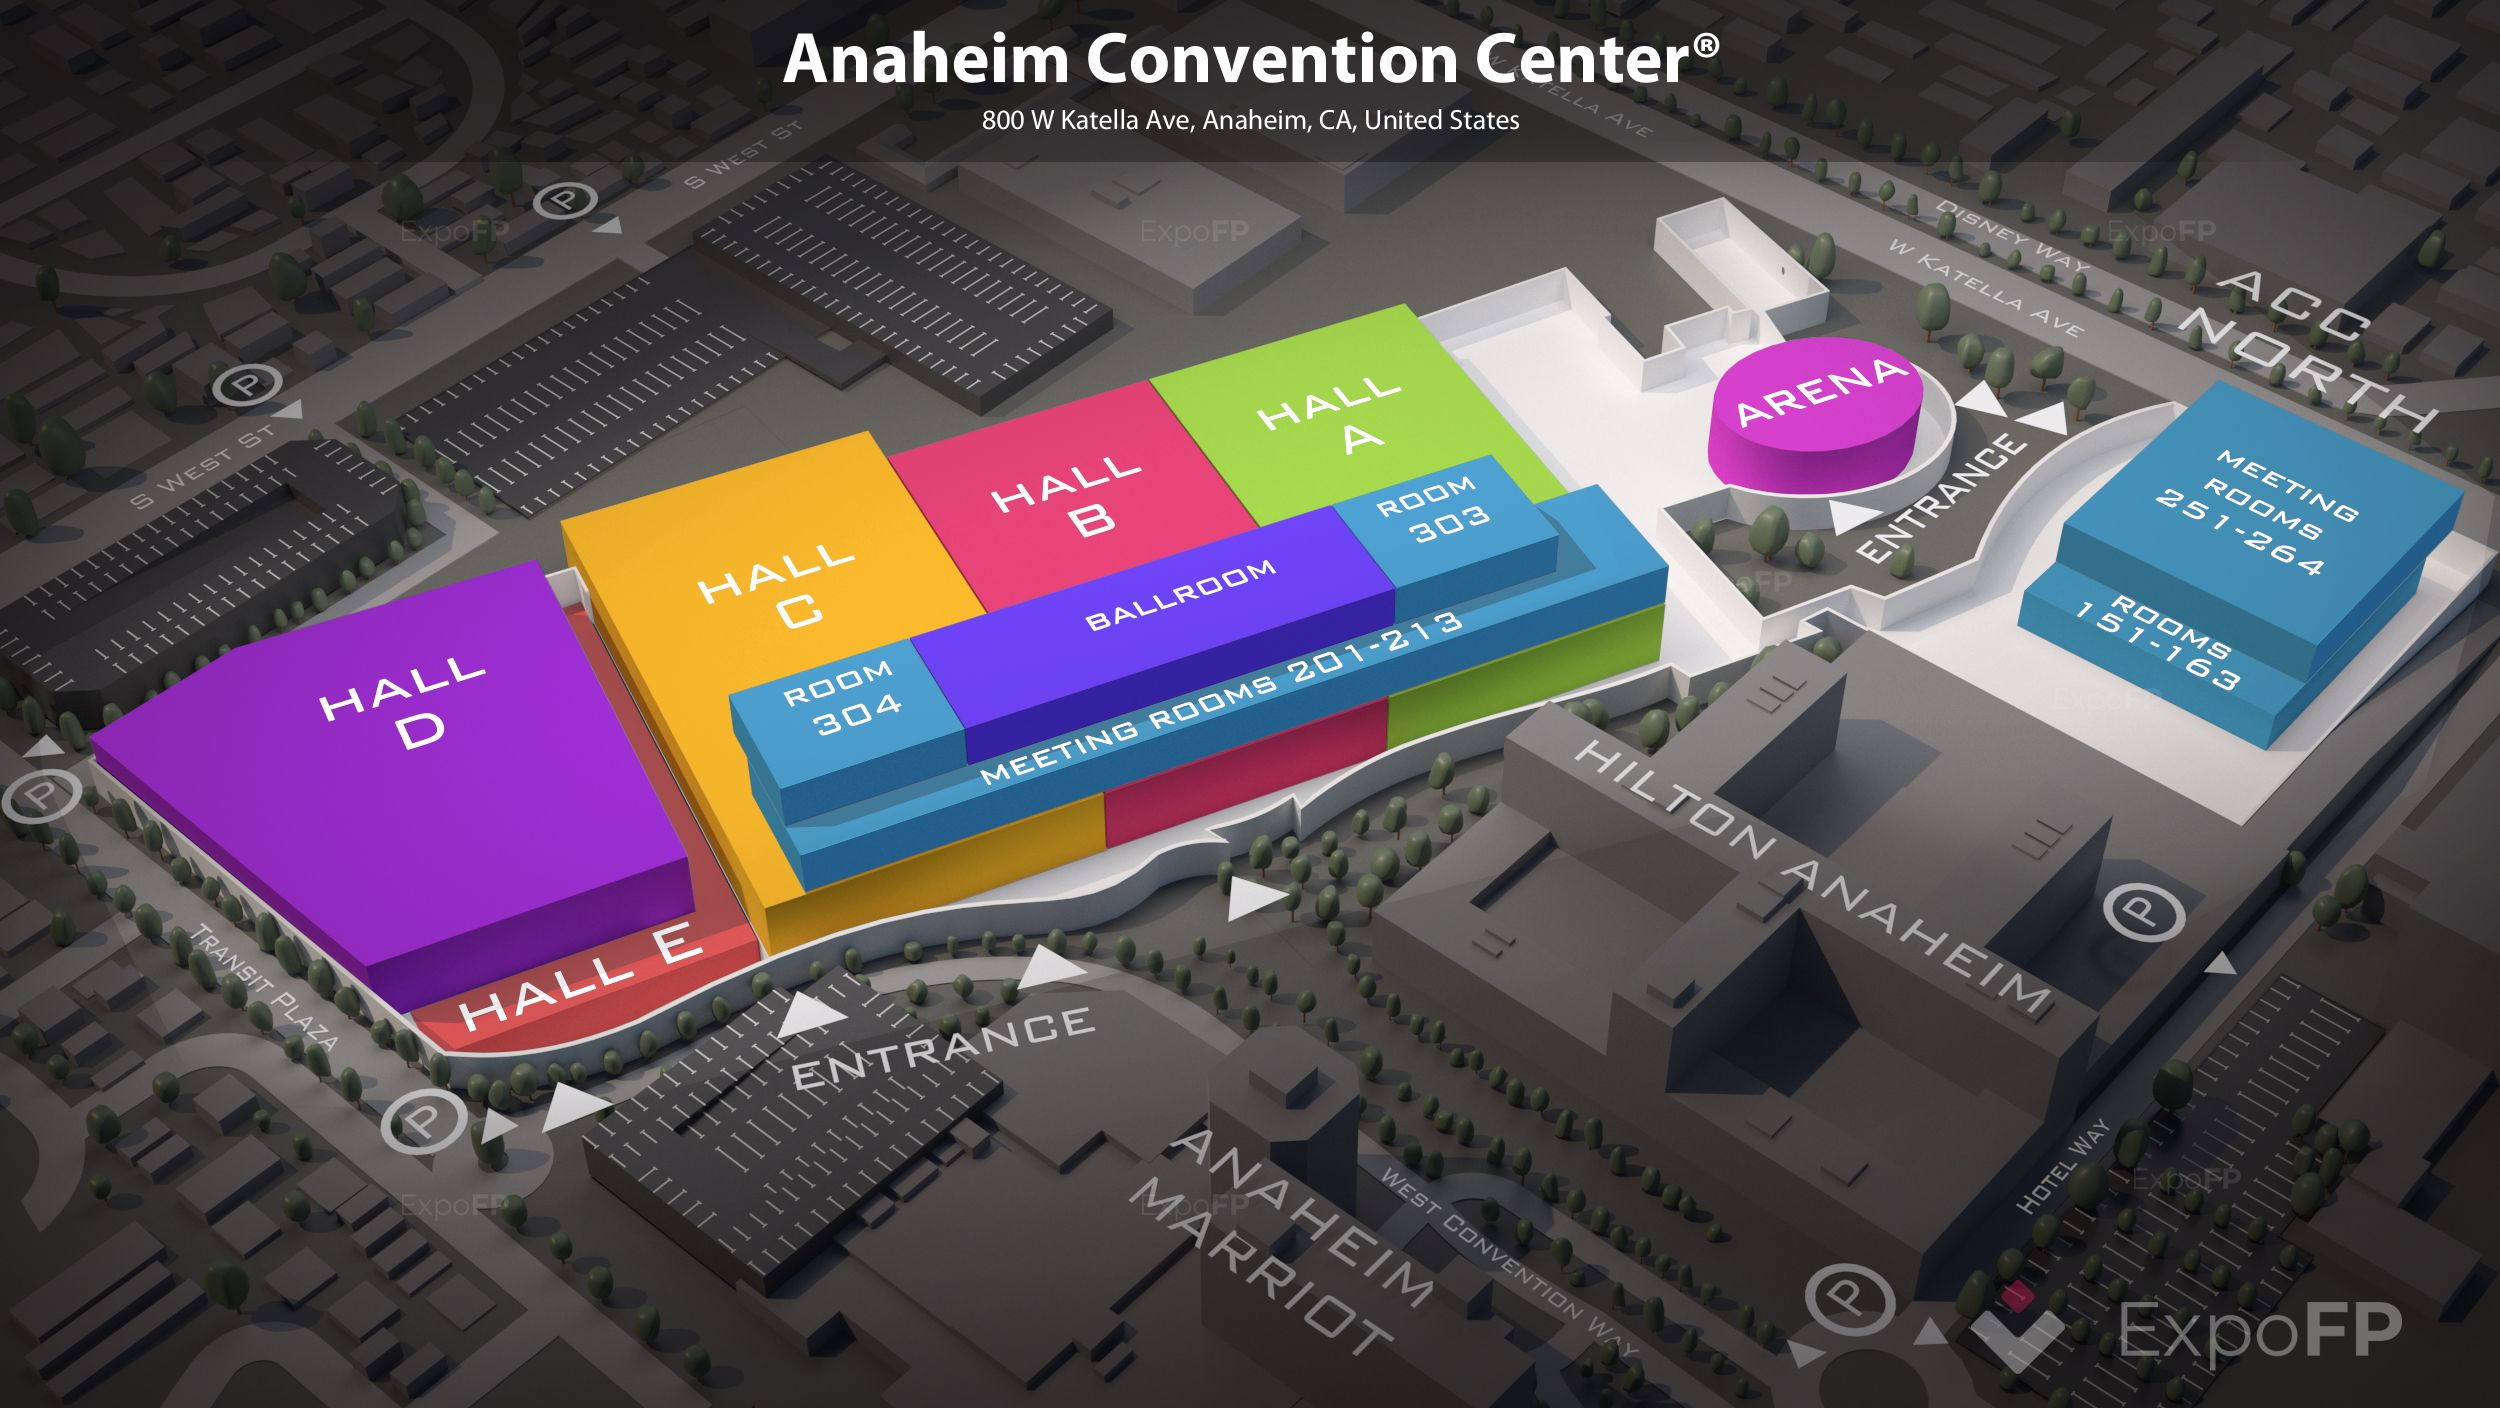 Anaheim Convention Center floor plan on map of las vegas convention center, map of providence convention center, map of hawaii convention center, map of lakeland center, map of visalia convention center, map of tacoma convention center, map of boston convention & exhibition center, map of los angeles convention center, map of fort worth convention center, map of cox convention center, map of centurylink center omaha, map of broward county convention center, map of monterey convention center, map of tucson convention center, map of valley view casino center, map of mccormick place convention center, map of donald e. stephens convention center, map of ontario convention center, map of kentucky convention center, map of cleveland convention center,